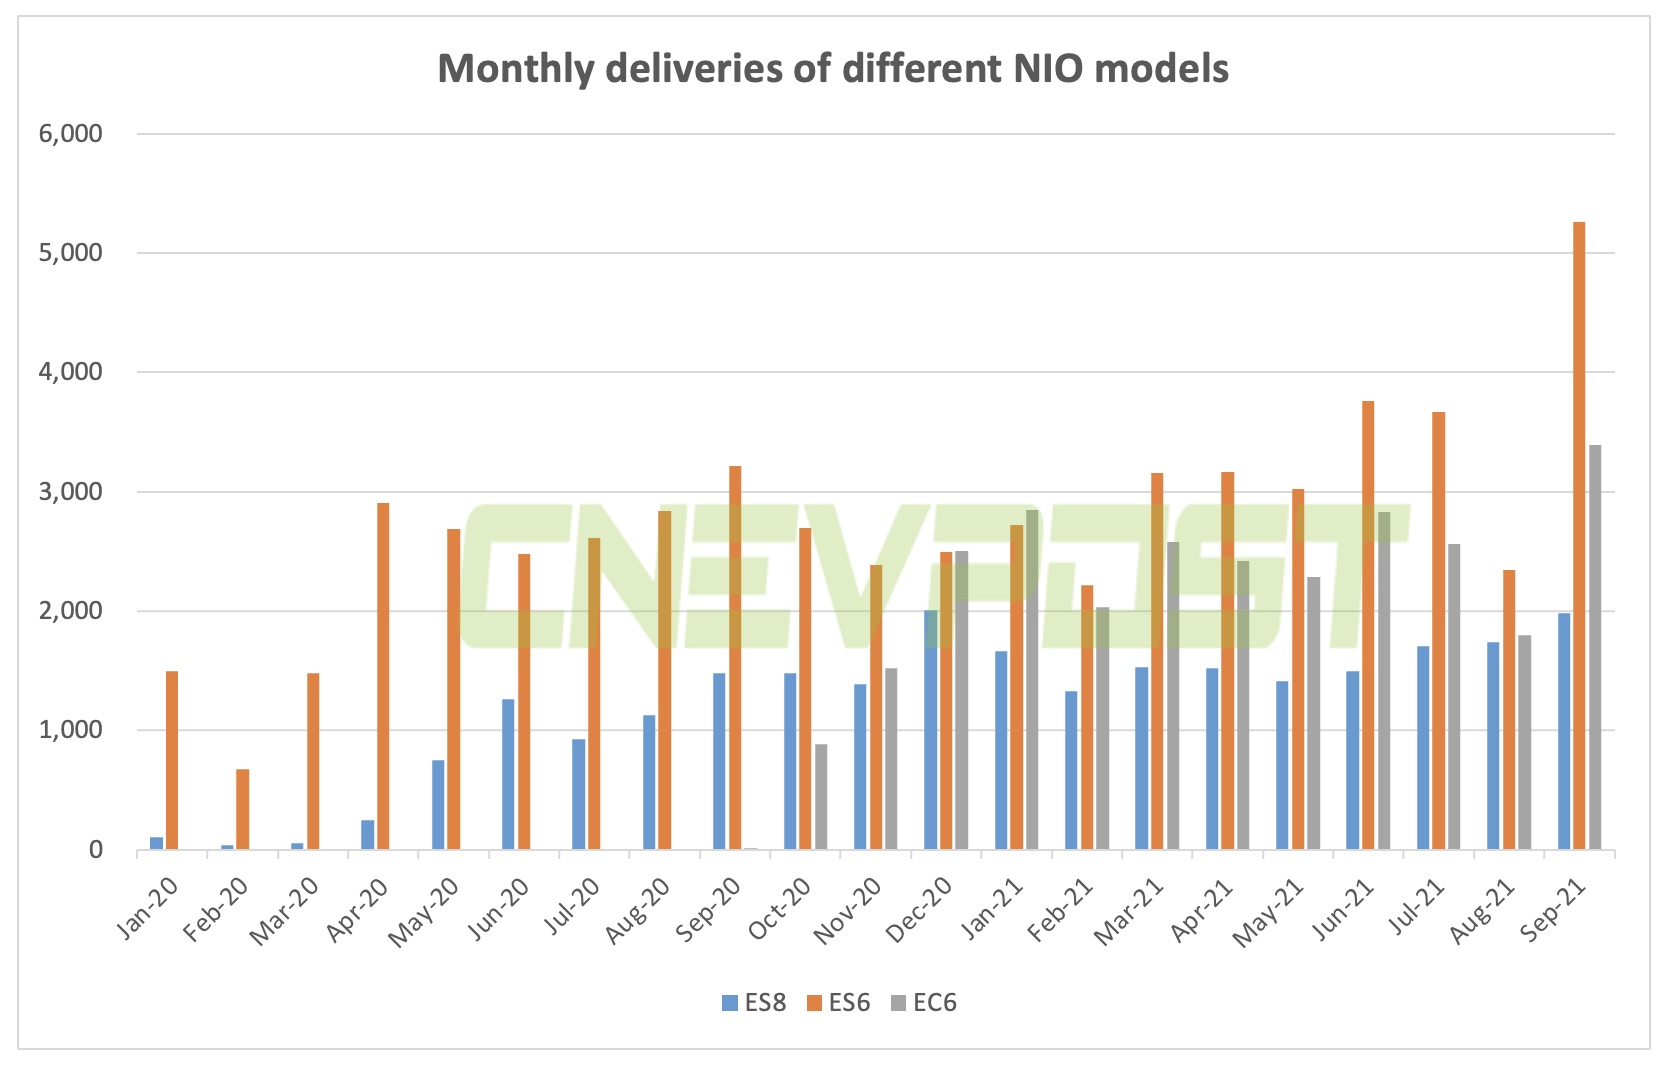 BREAKING: NIO delivered record 10,628 units in Sept, surpassing 10k threshold for first time-CnEVPost